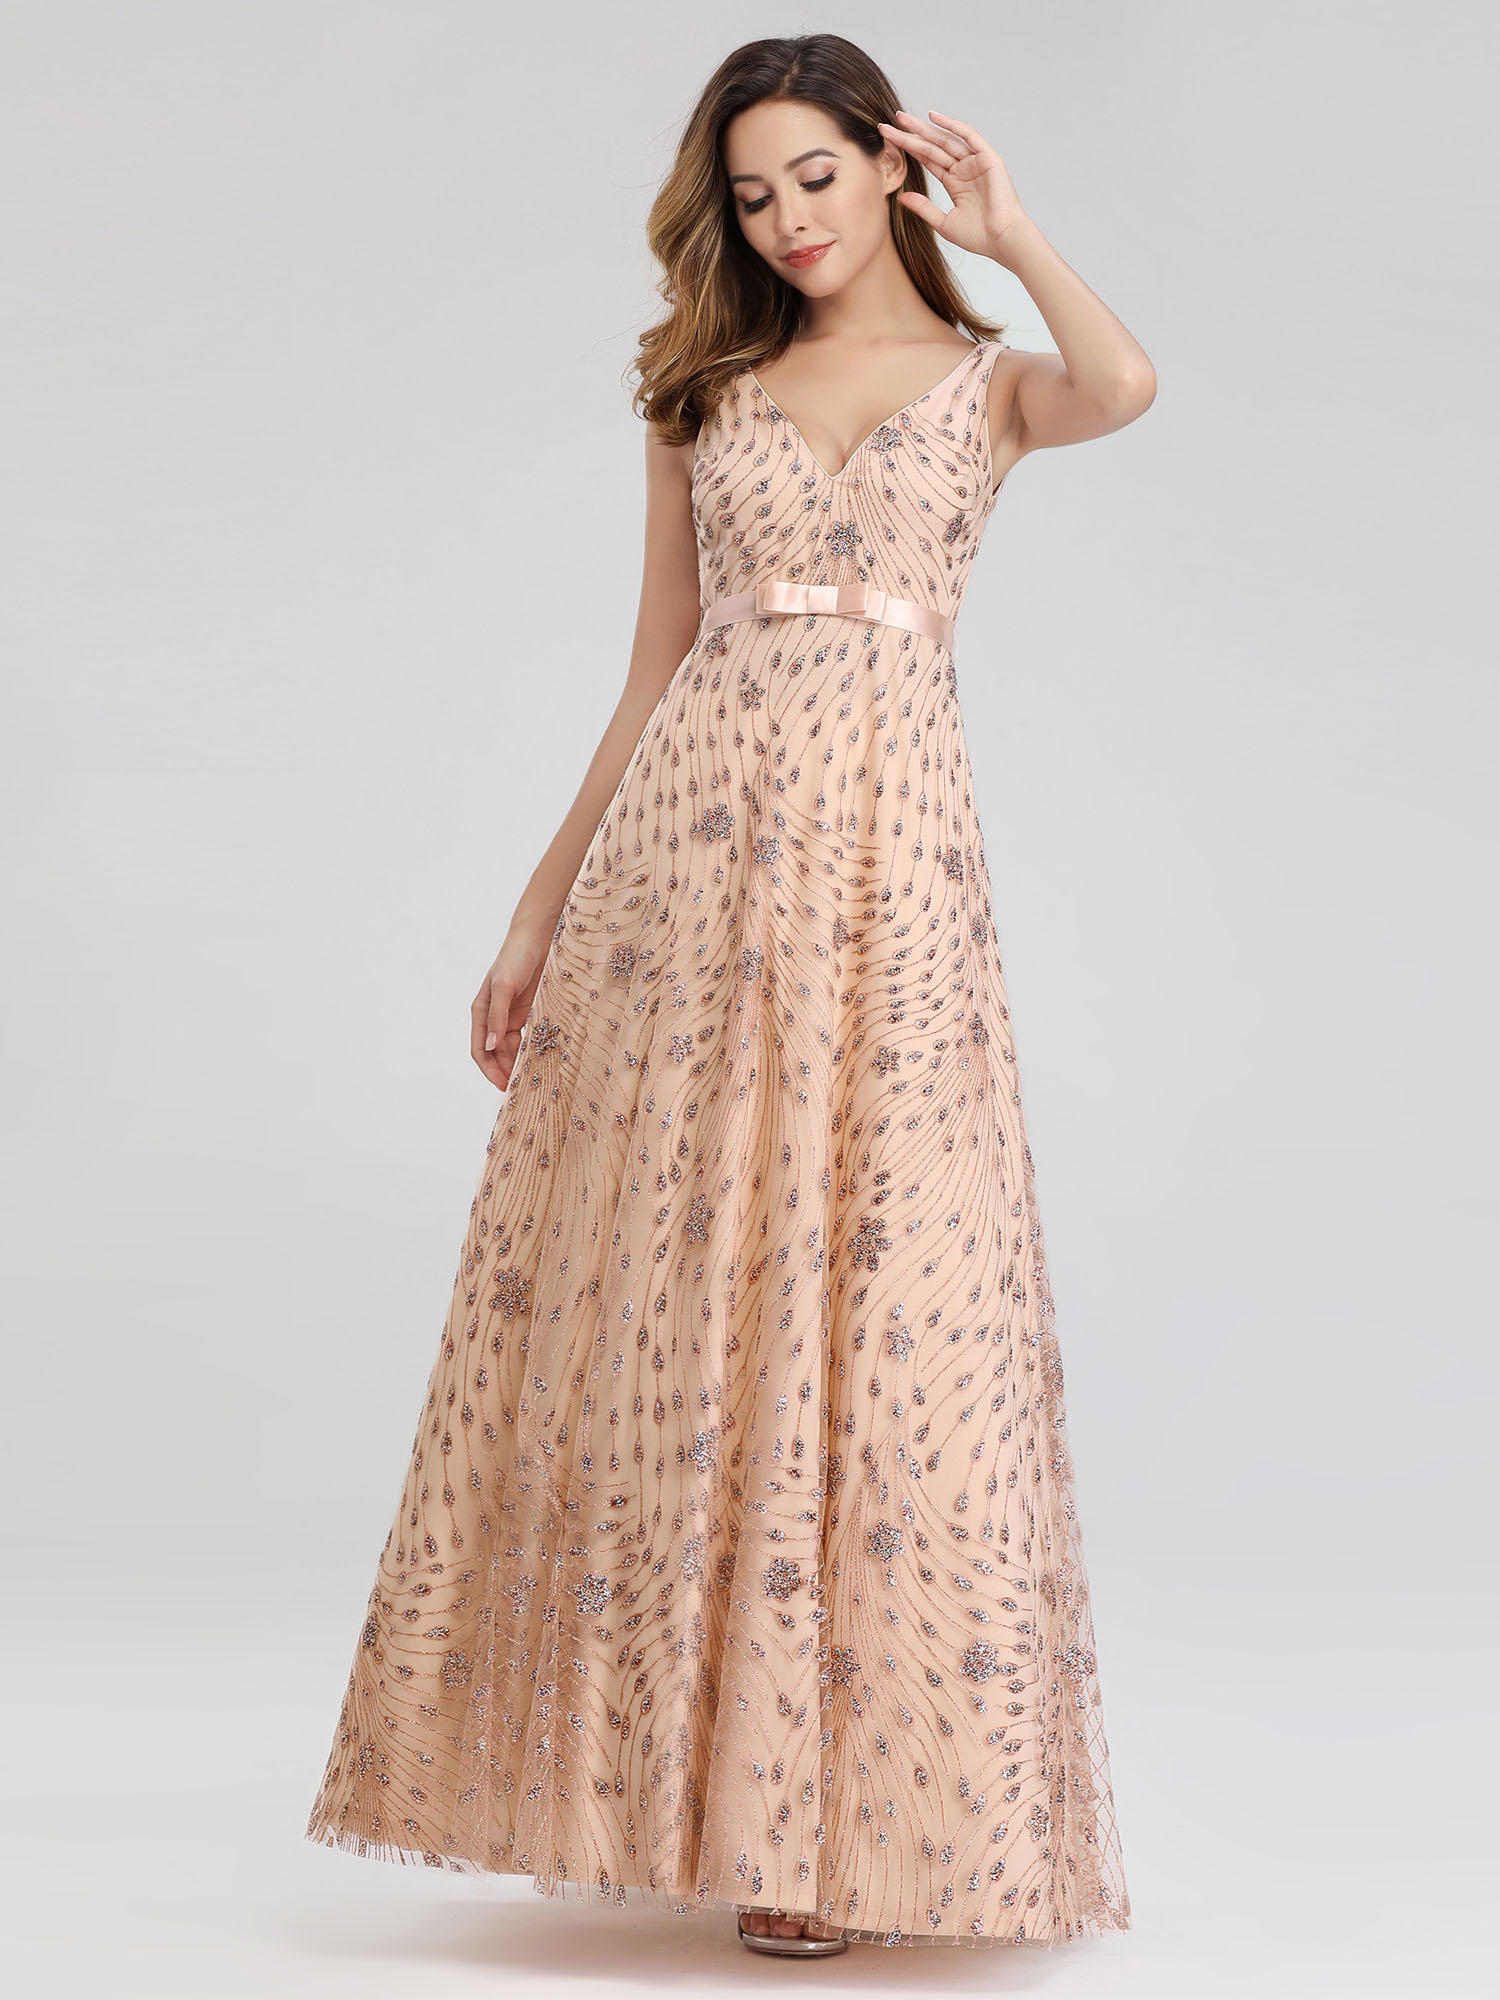 Ever-Pretty-US-Glitter-Evening-Dresses-A-Line-Floral-V-Neck-Party-Cocktail-Gowns thumbnail 10